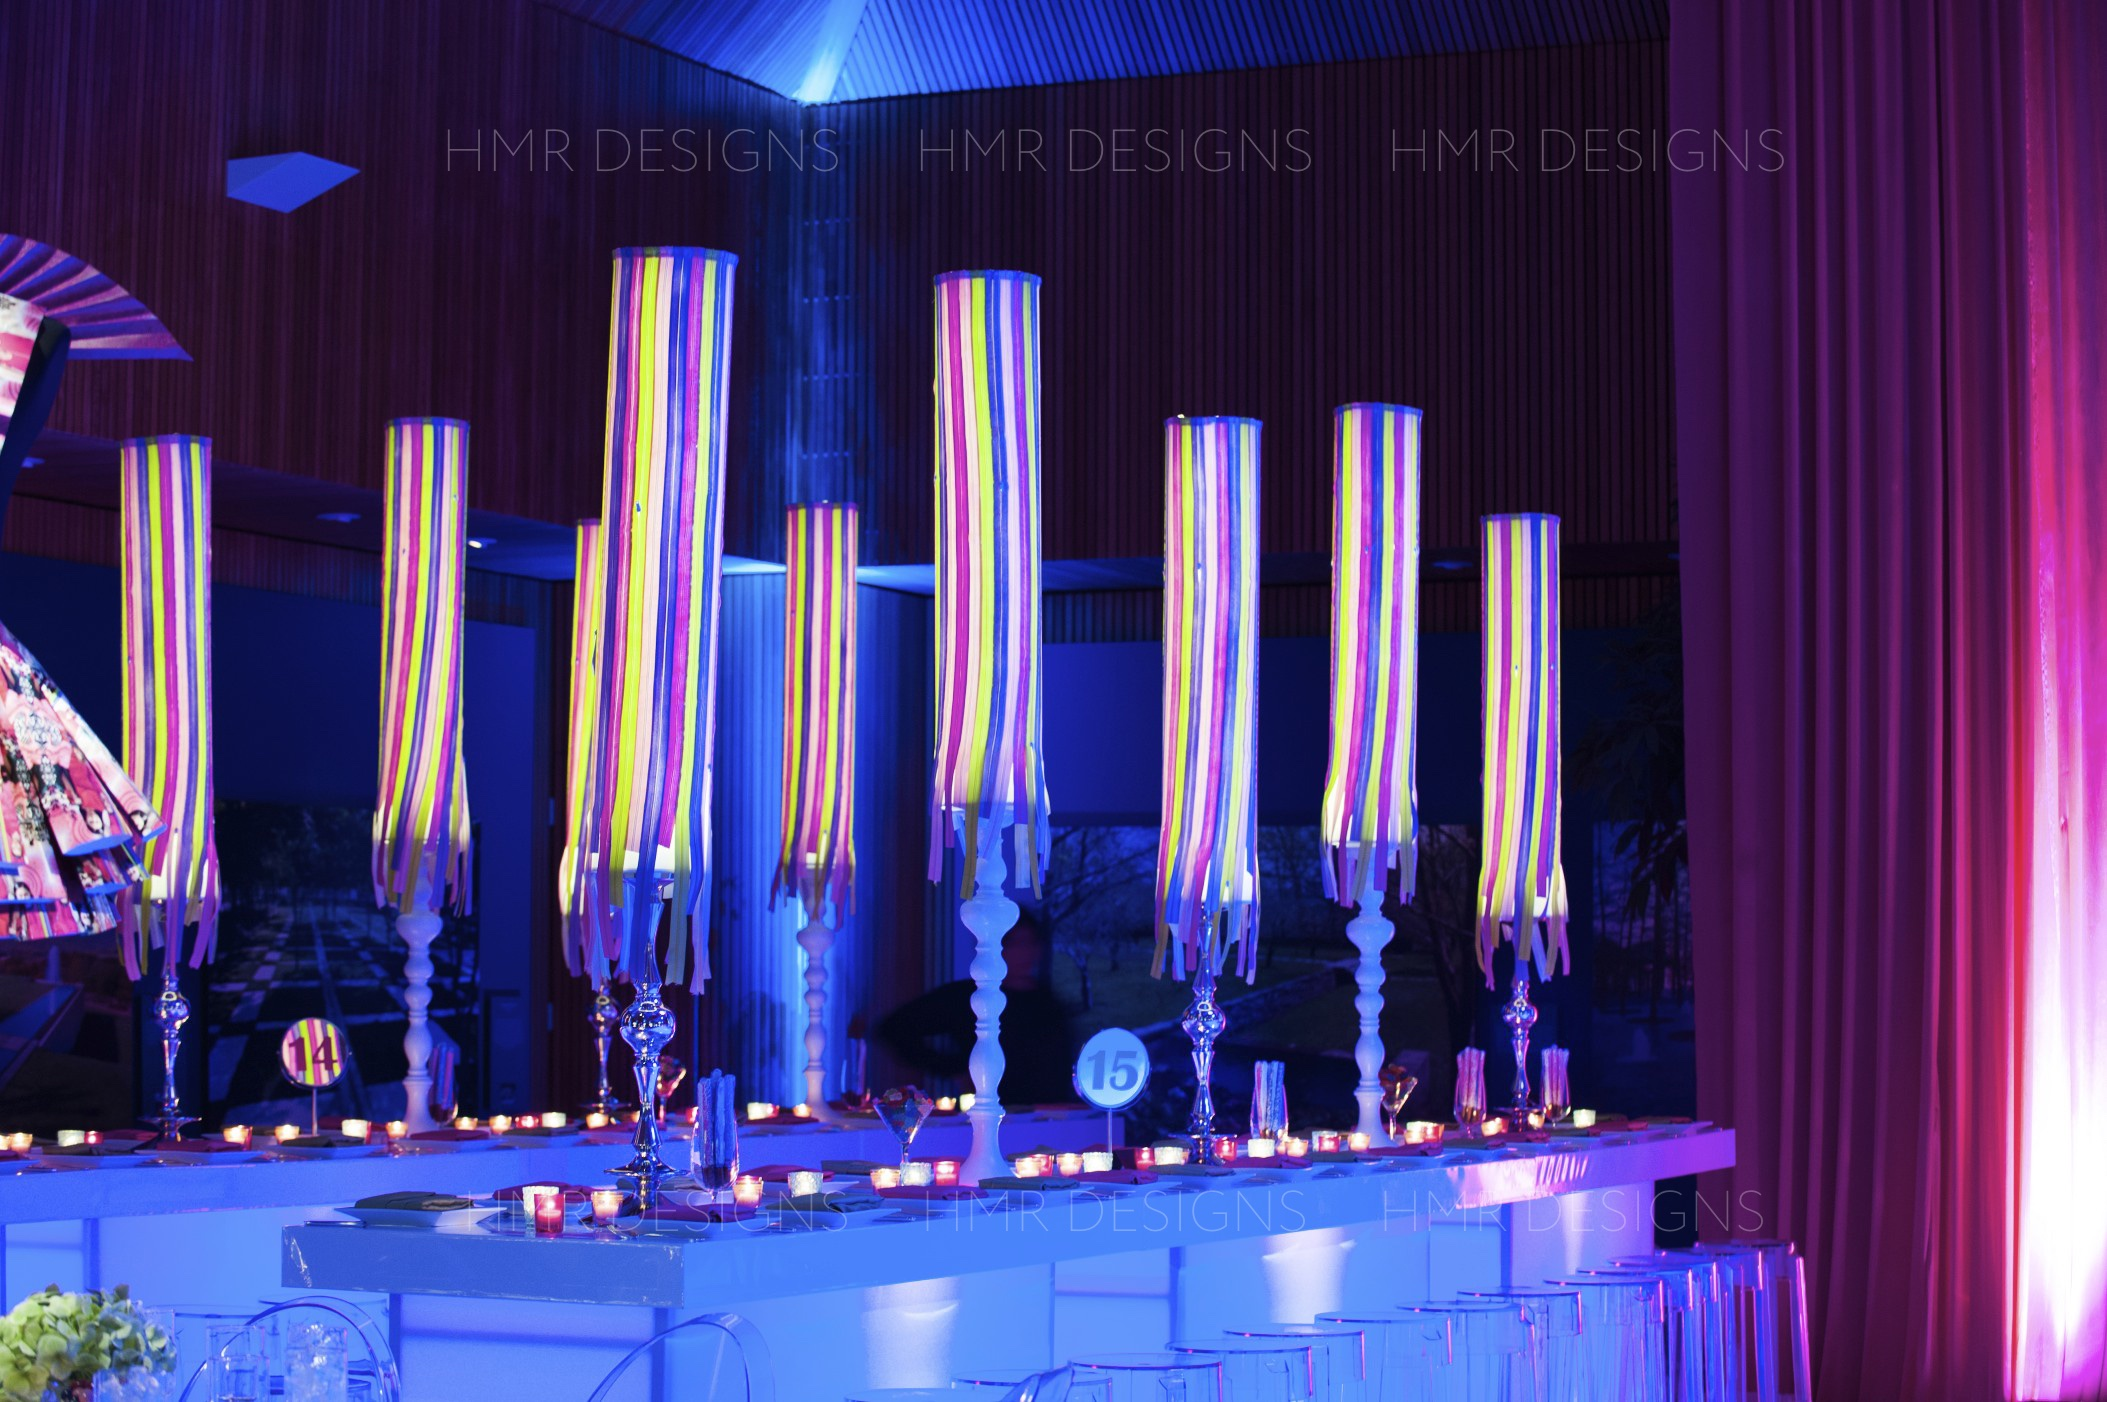 Custom lamps made of zippers line highboy tables at the Chicago Botanic Garden for a Mitzvah designed by HMR Designs